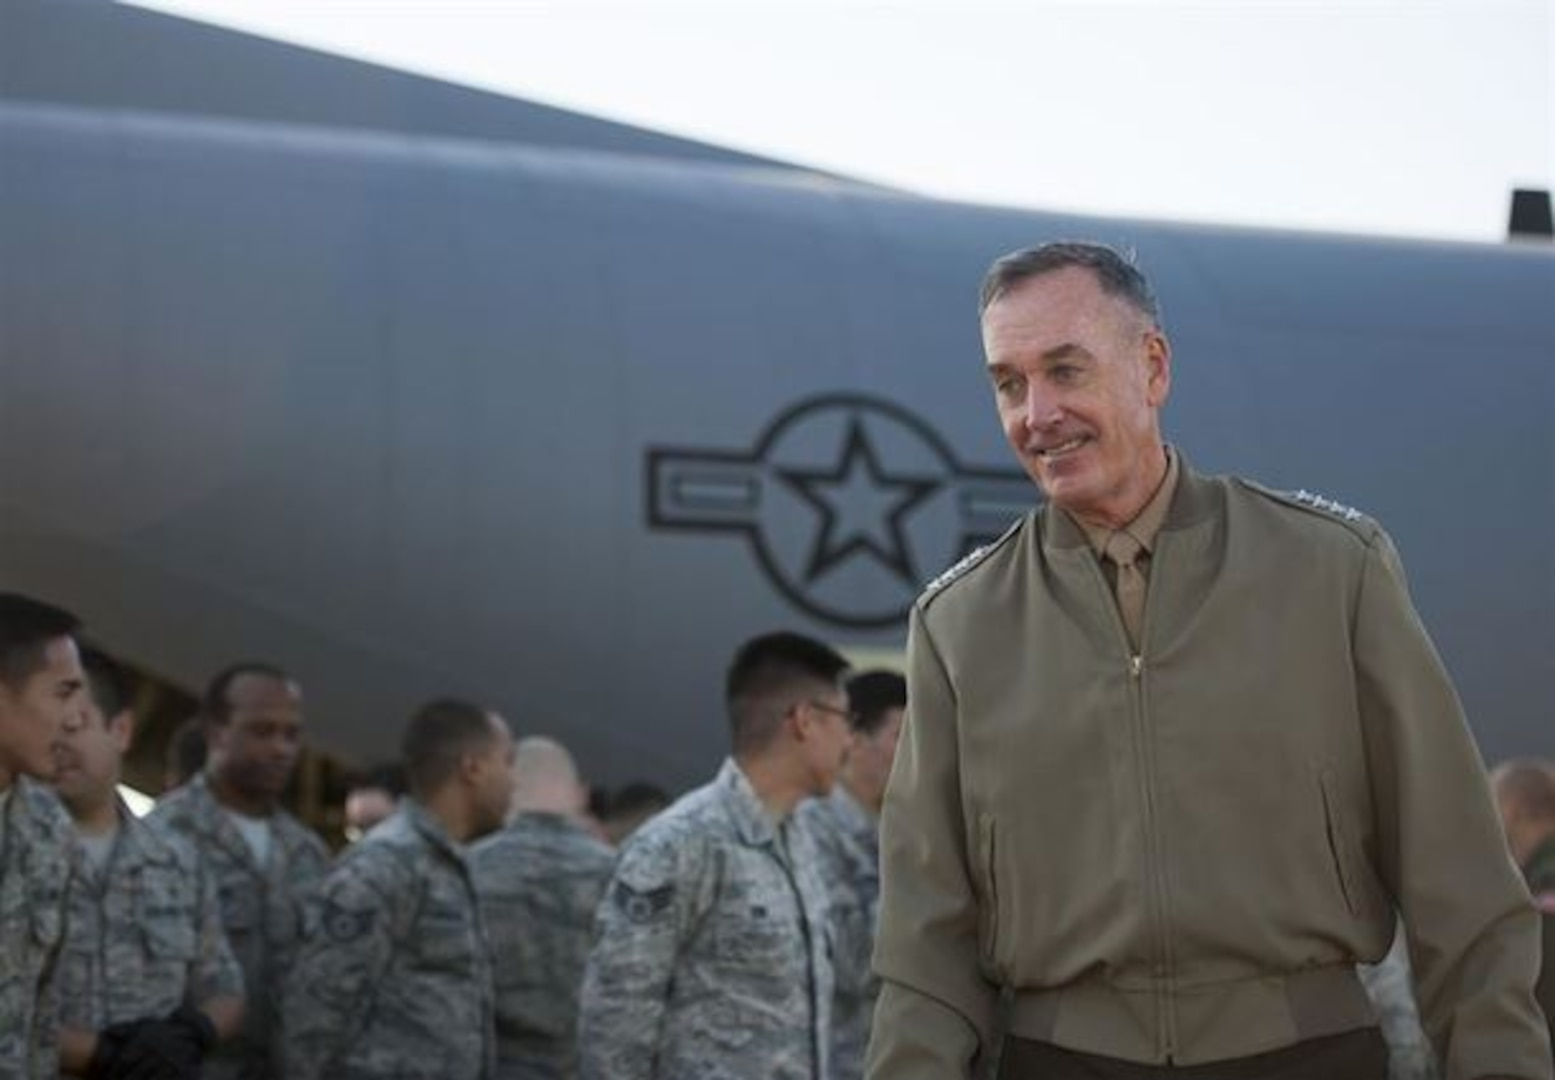 U.S. Marine Corps Gen. Joseph F. Dunford Jr., chairman of the Joint Chiefs of Staff, meets on the flightline of Yokota Air Base, Japan, with U.S. airmen assigned the 374th Airlift Wing, Nov. 4, 2015. (DoD photo by U.S. Navy Petty Officer 2nd Class Dominique A. Pineiro)